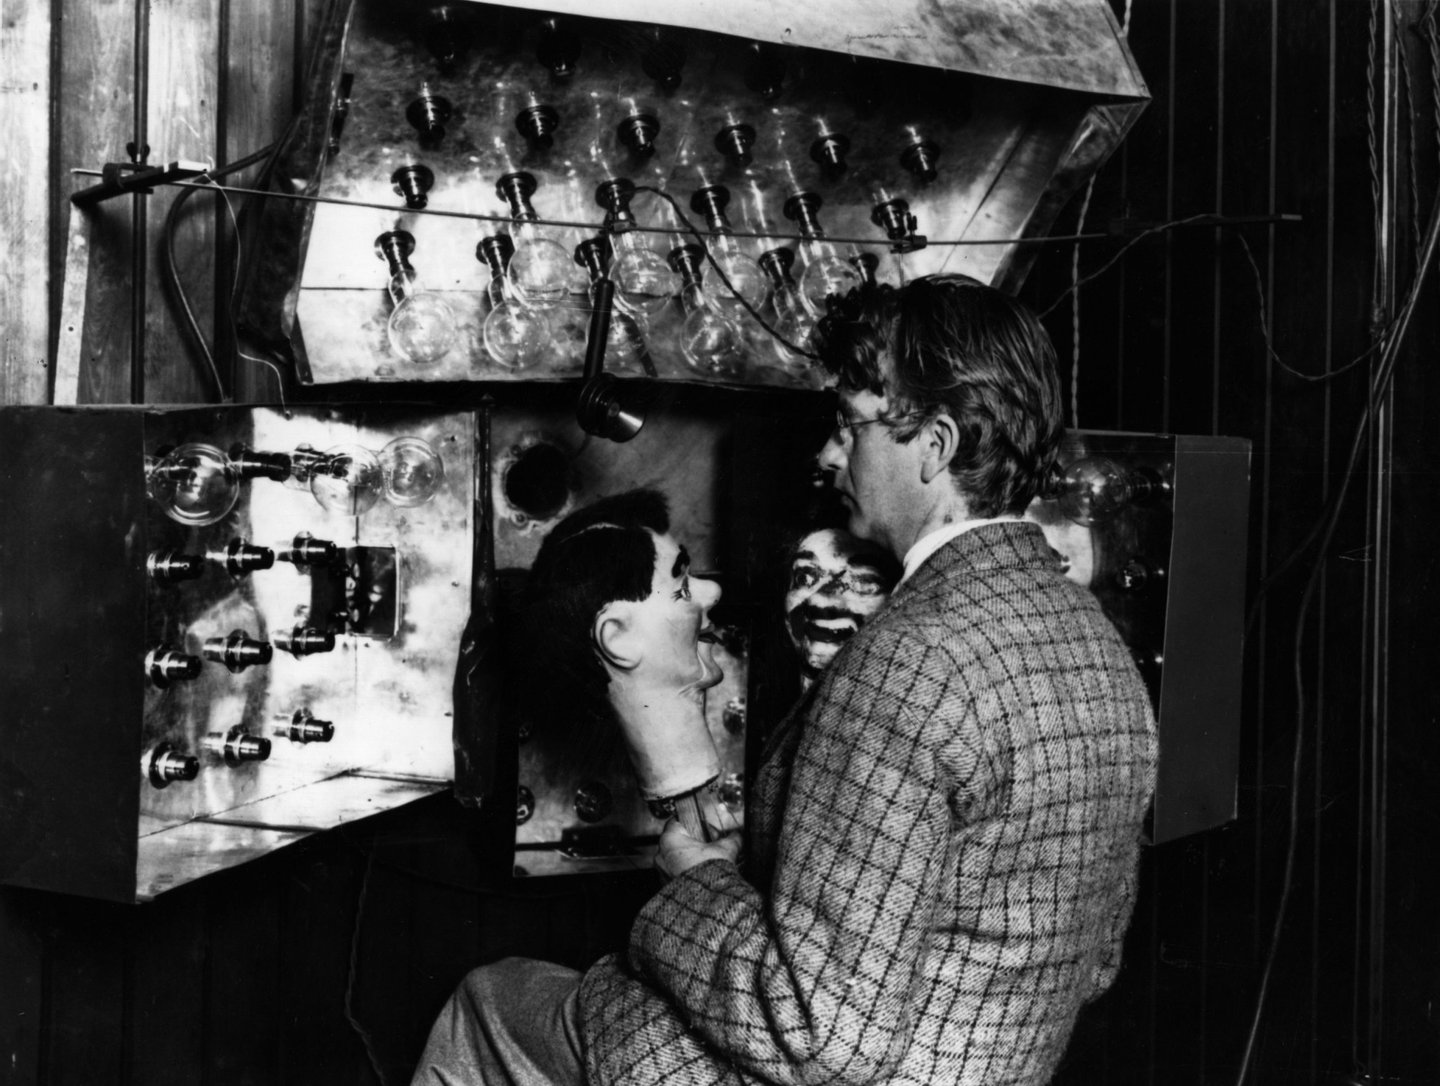 Scottish electrical engineer and television pioneer John Logie Baird (1888 - 1946) demonstrating his new invention the television with the aid of two ventriloquist's dummies. Baird was born in Helensburgh and studied at Glasgow University. Baird worked as an engineer at Clyde Valley Electric Power Company but had to retire due to ill health. He used his time to conduct experimental research into the transmission of images and gave a successful public display of his television system in London on 27th January 1926. In 1929 his mechanically scanned system was adopted by the BBC and he provided an improved system five years later. Baird also helped pioneer colour television and stereophonic sound. (Photo by Topical Press Agency/Getty Images)